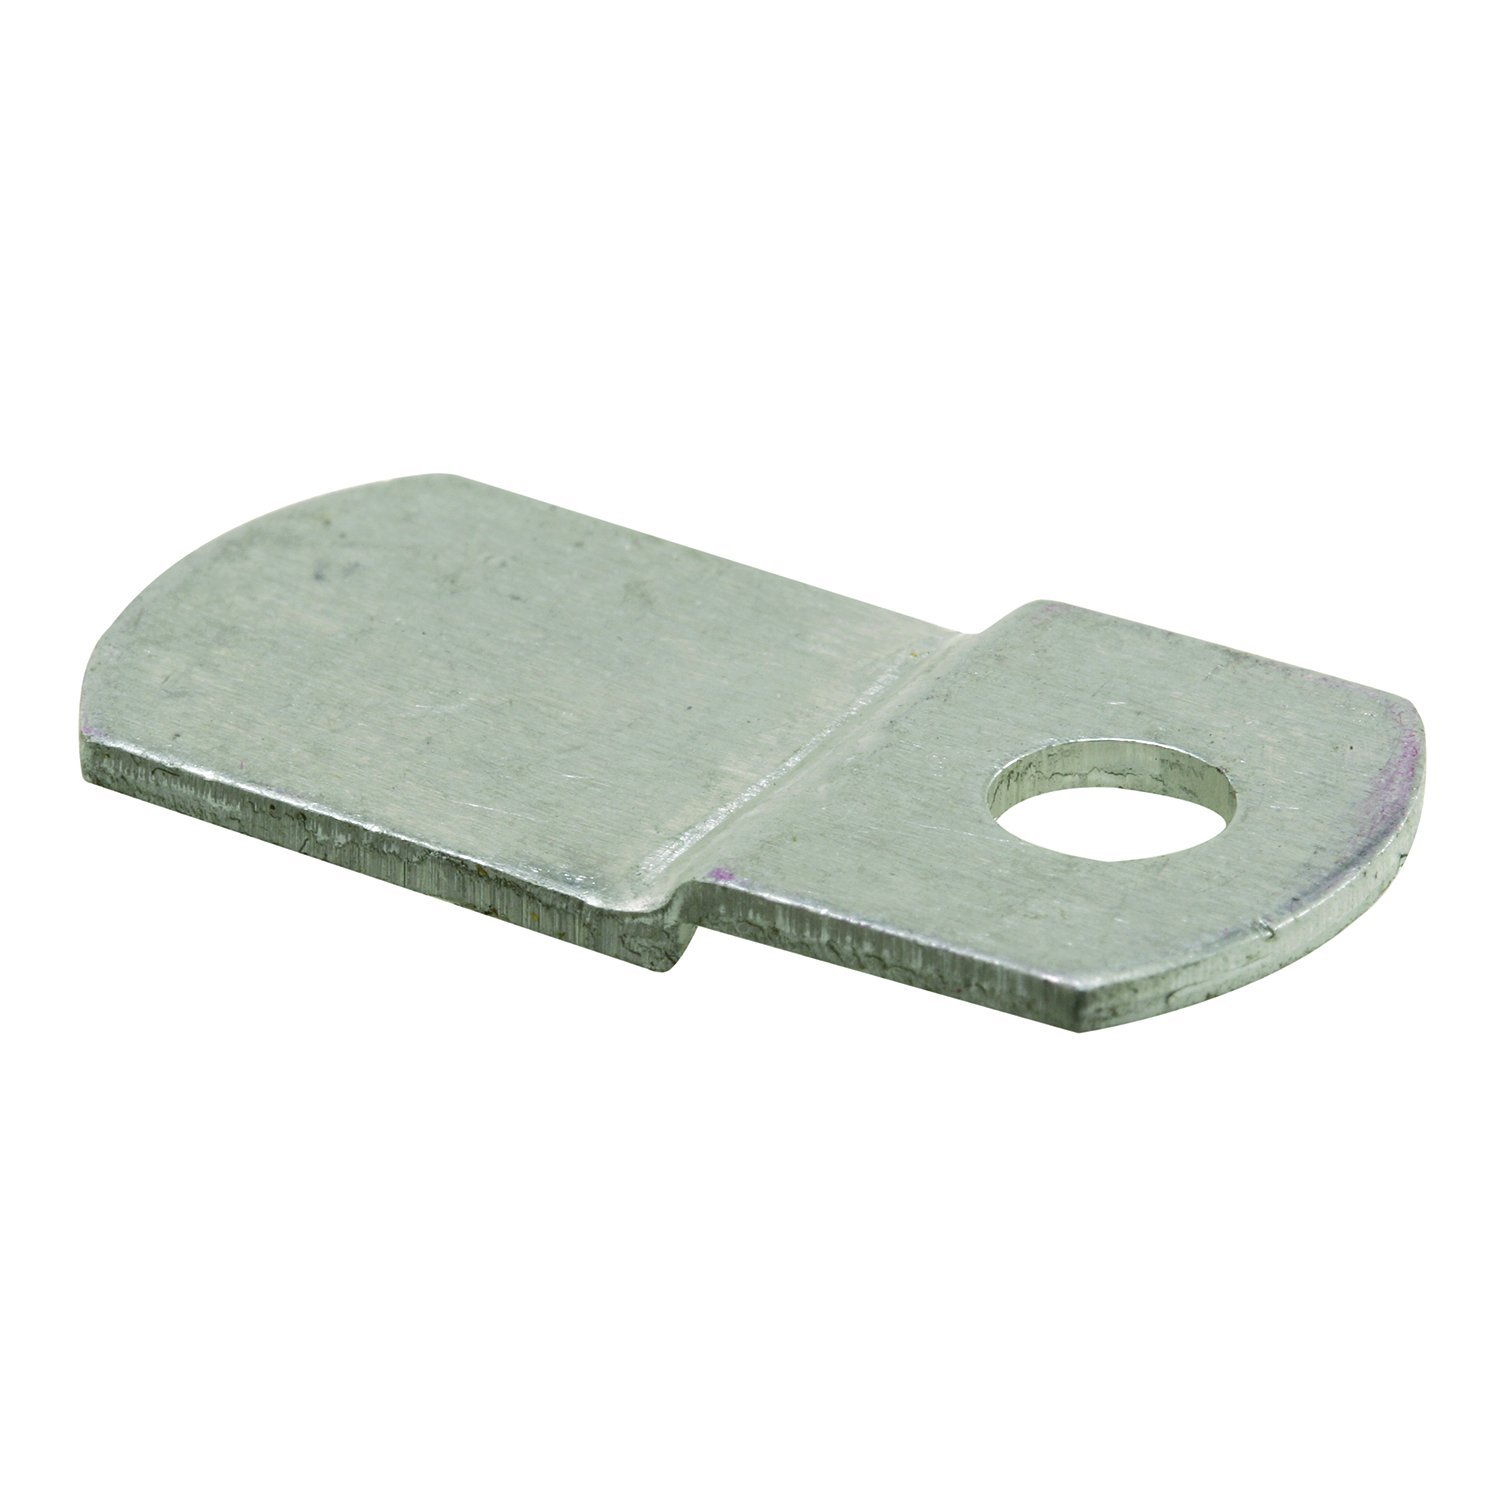 Prime-Line Products L 5894 Window Screen ''Z'' Clips with Mill Finish (8 Pack), Stamped Aluminum, 1/16'' Offset